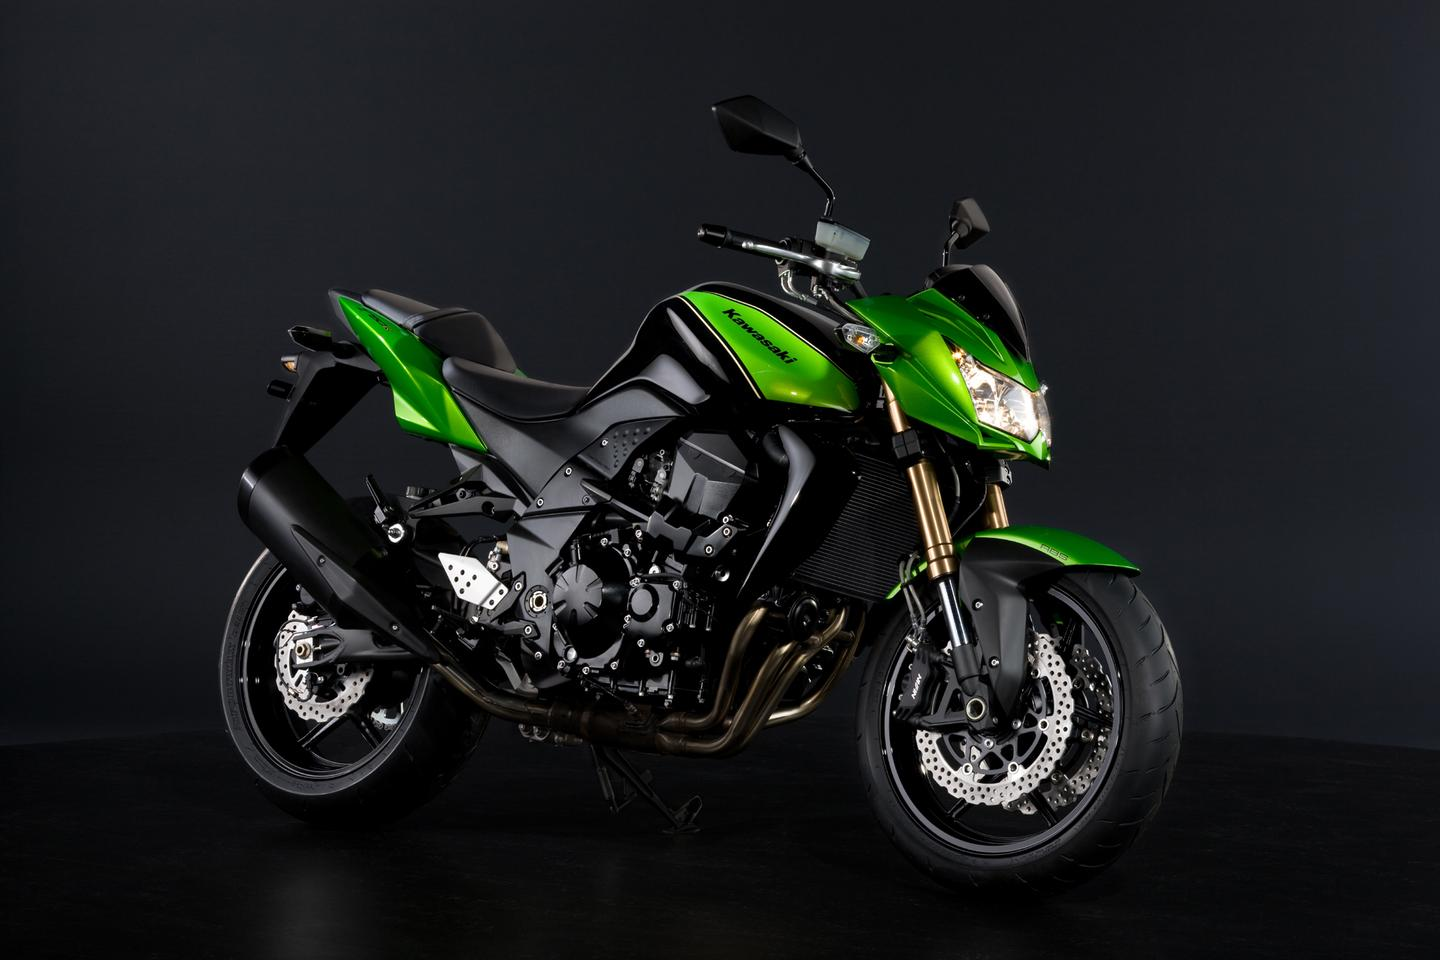 Kawasaki new Z750R sports suspension at both ends plus radial mounts for the four-piston Nissin calipers